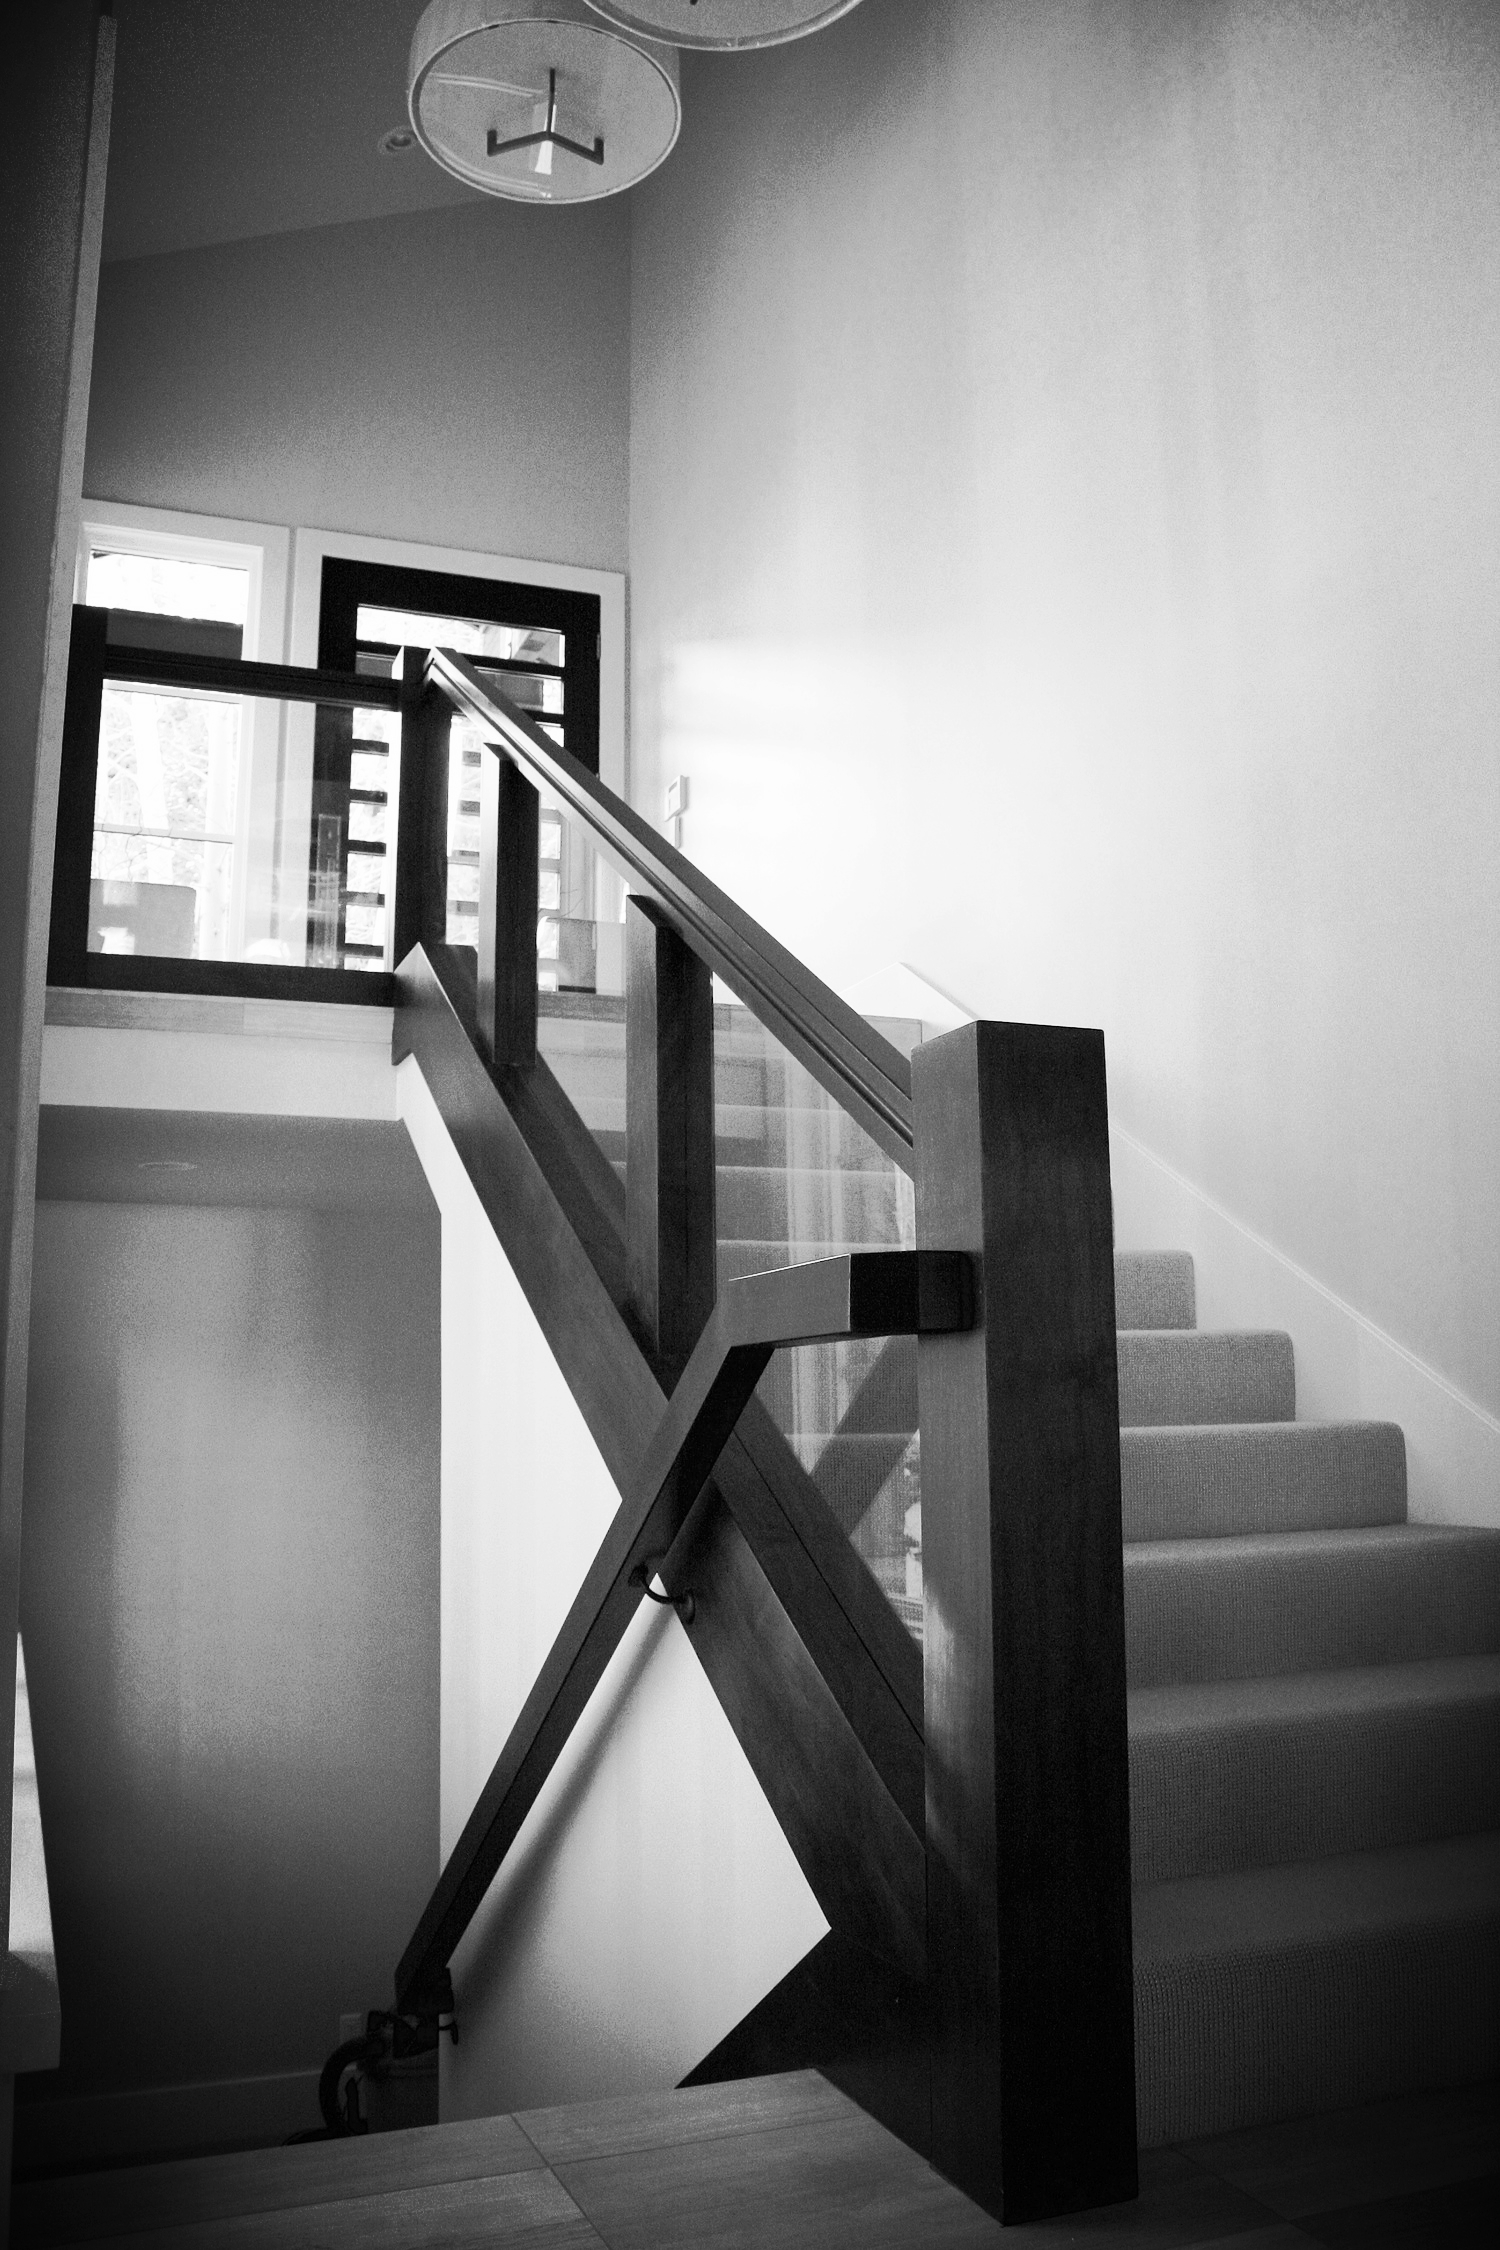 ENTRY_Stairs.02.jpg